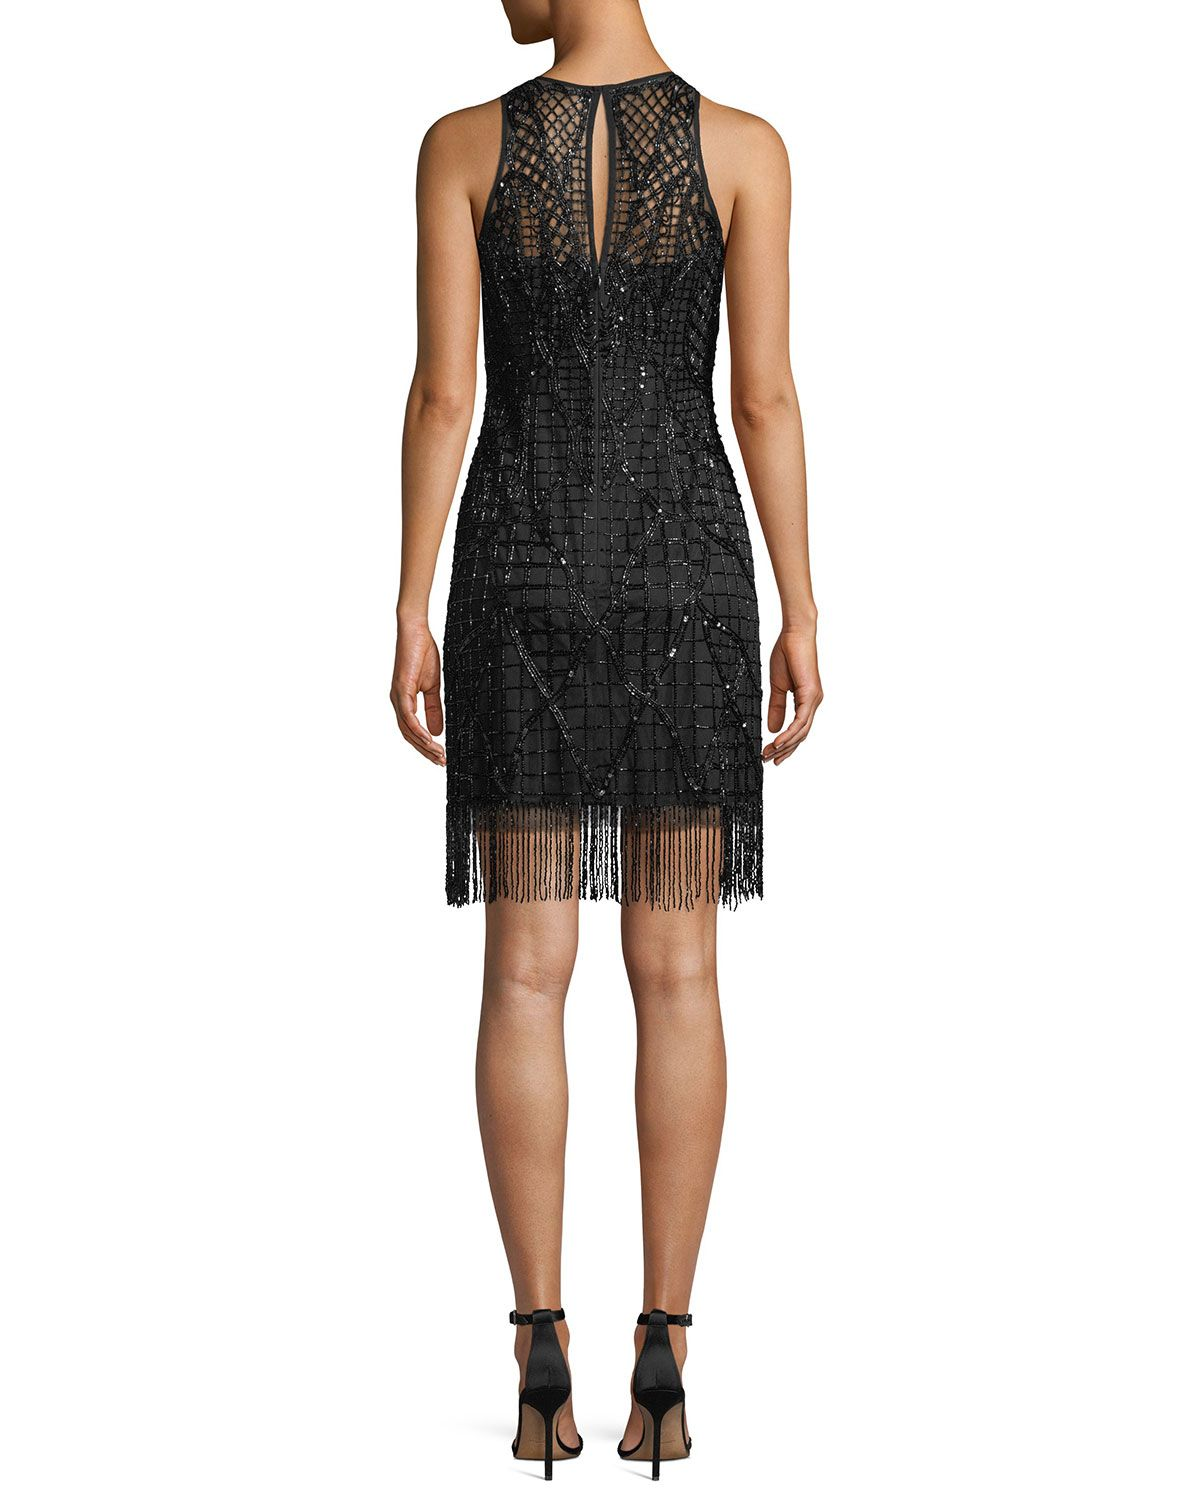 3af019725cad8 Aidan Mattox Sleeveless Little Black Cocktail Dress w  Beading   Fringe